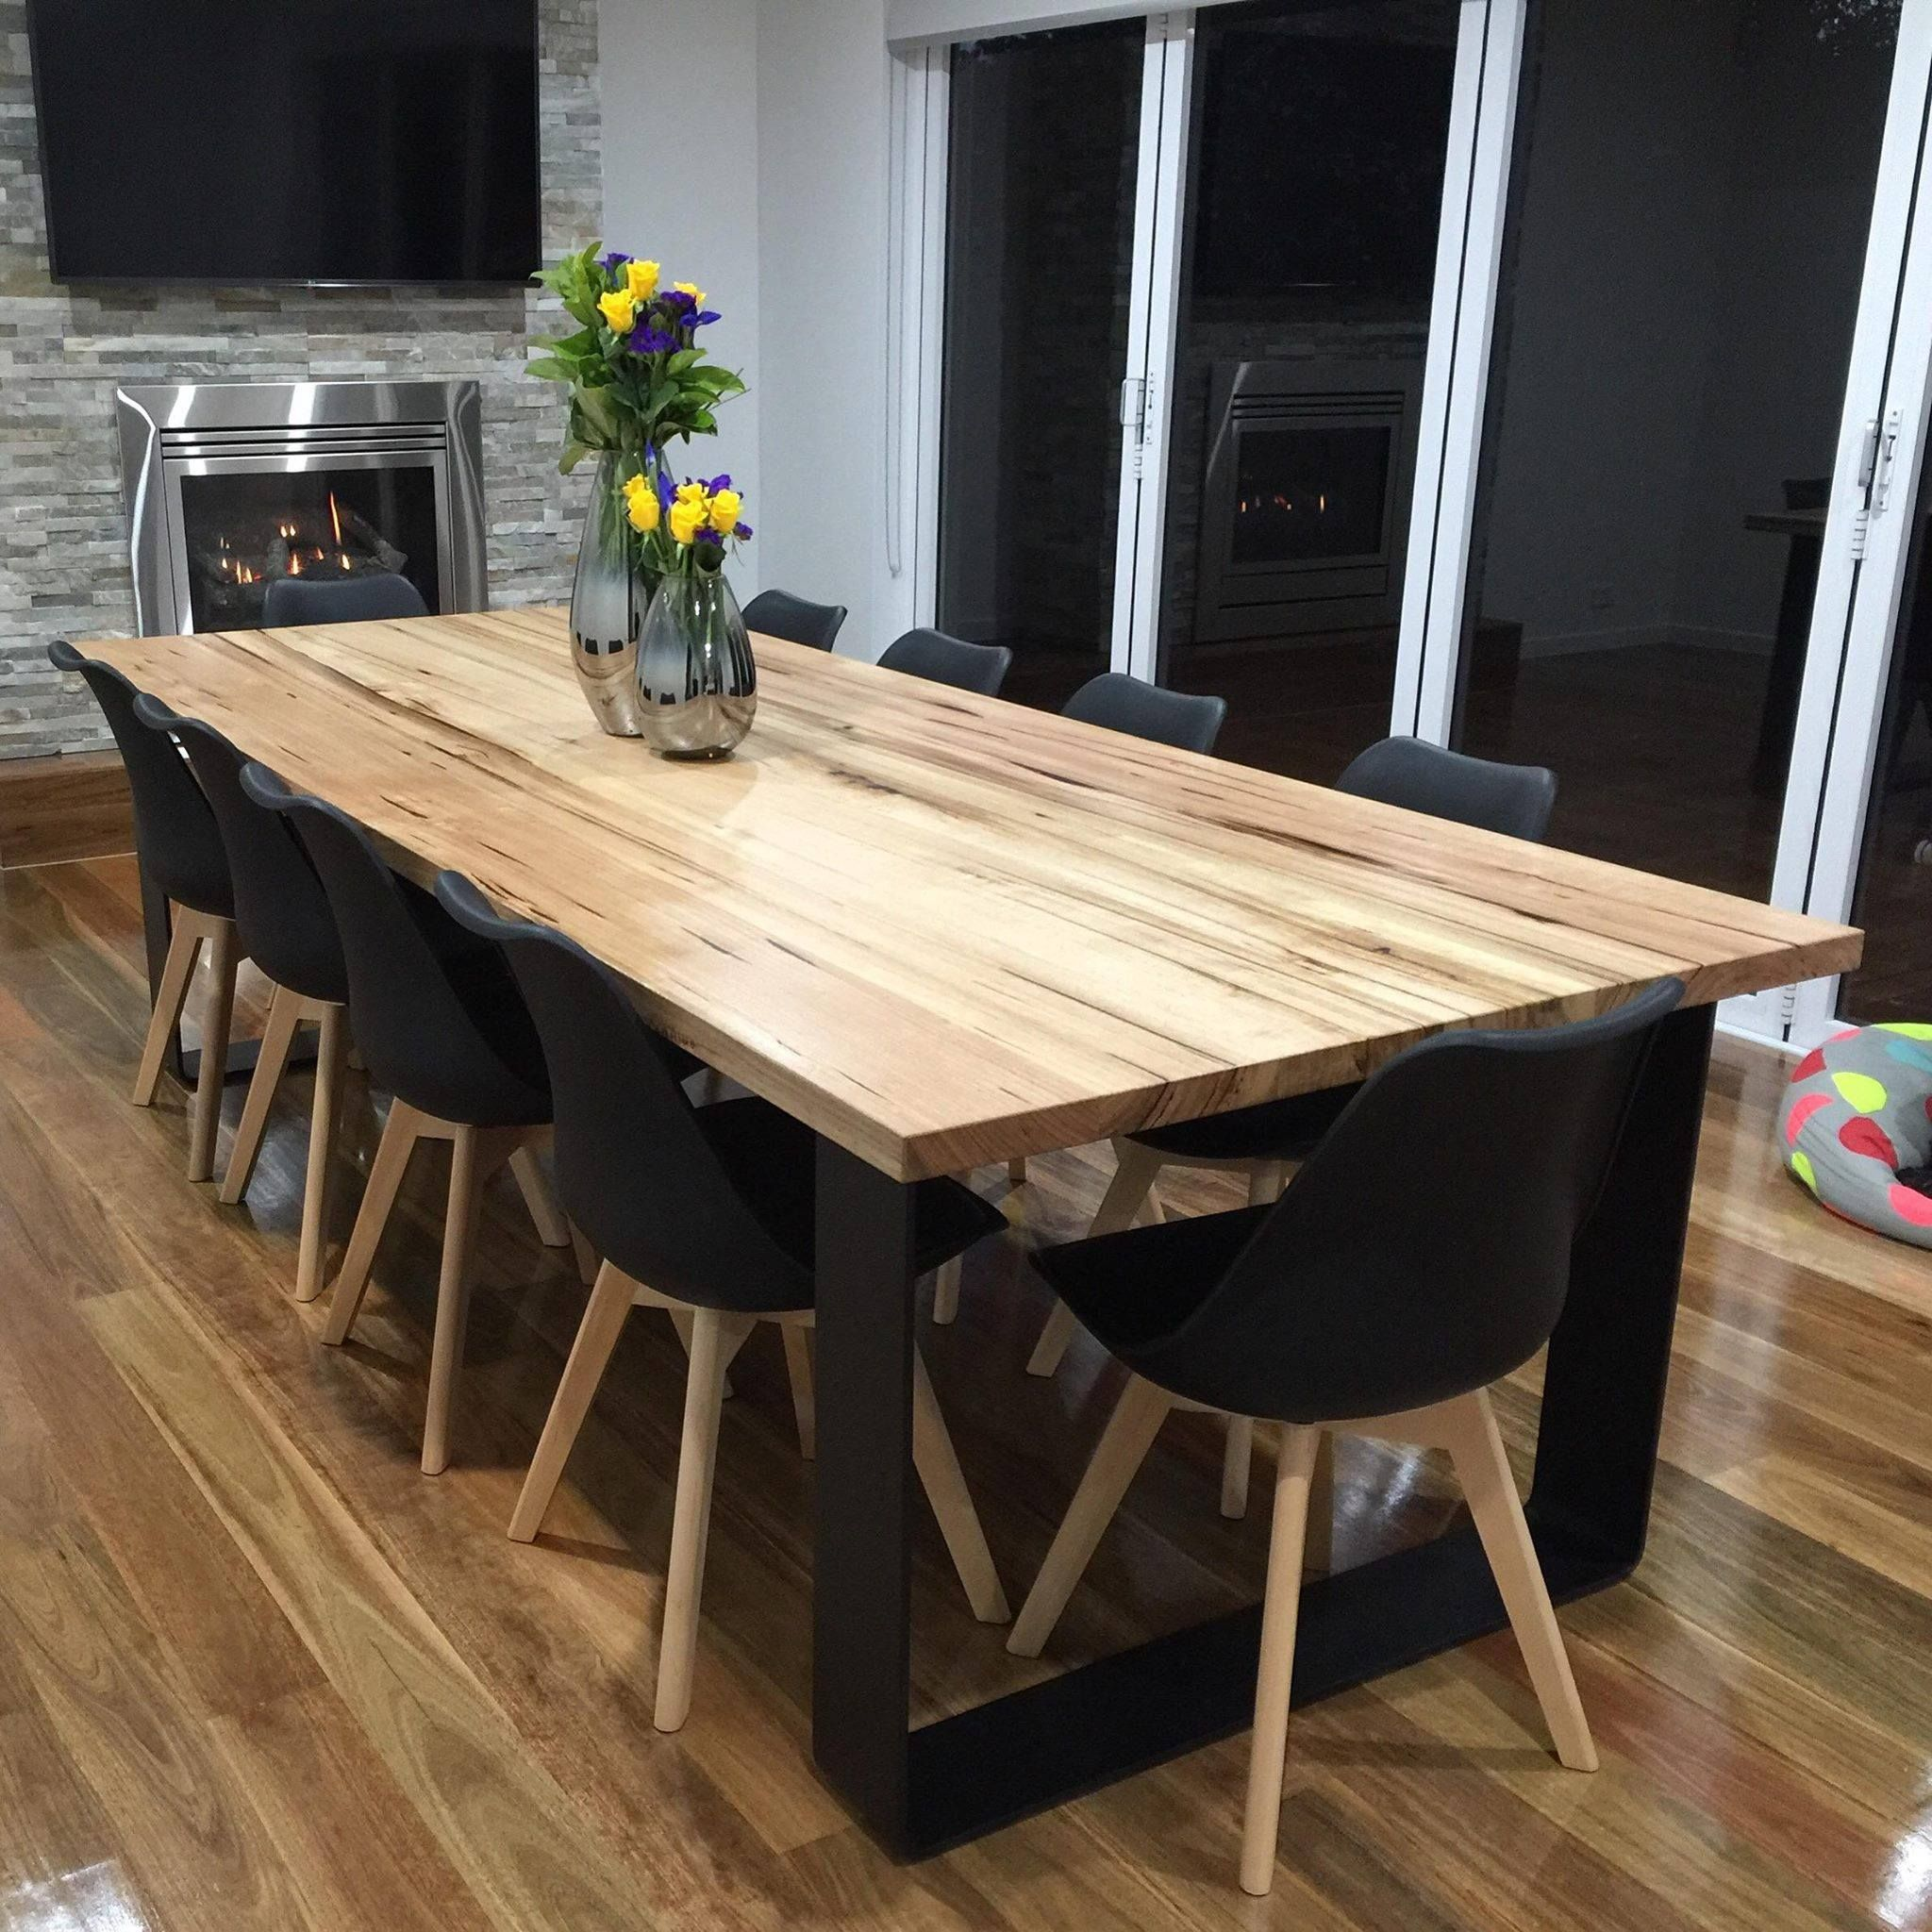 Dining Tables Australia All It Takes Is Just One Piece Of Furniture To Give Your Home The Wow Factor Ma Oak Dining Table Timber Dining Table Dining Table Top